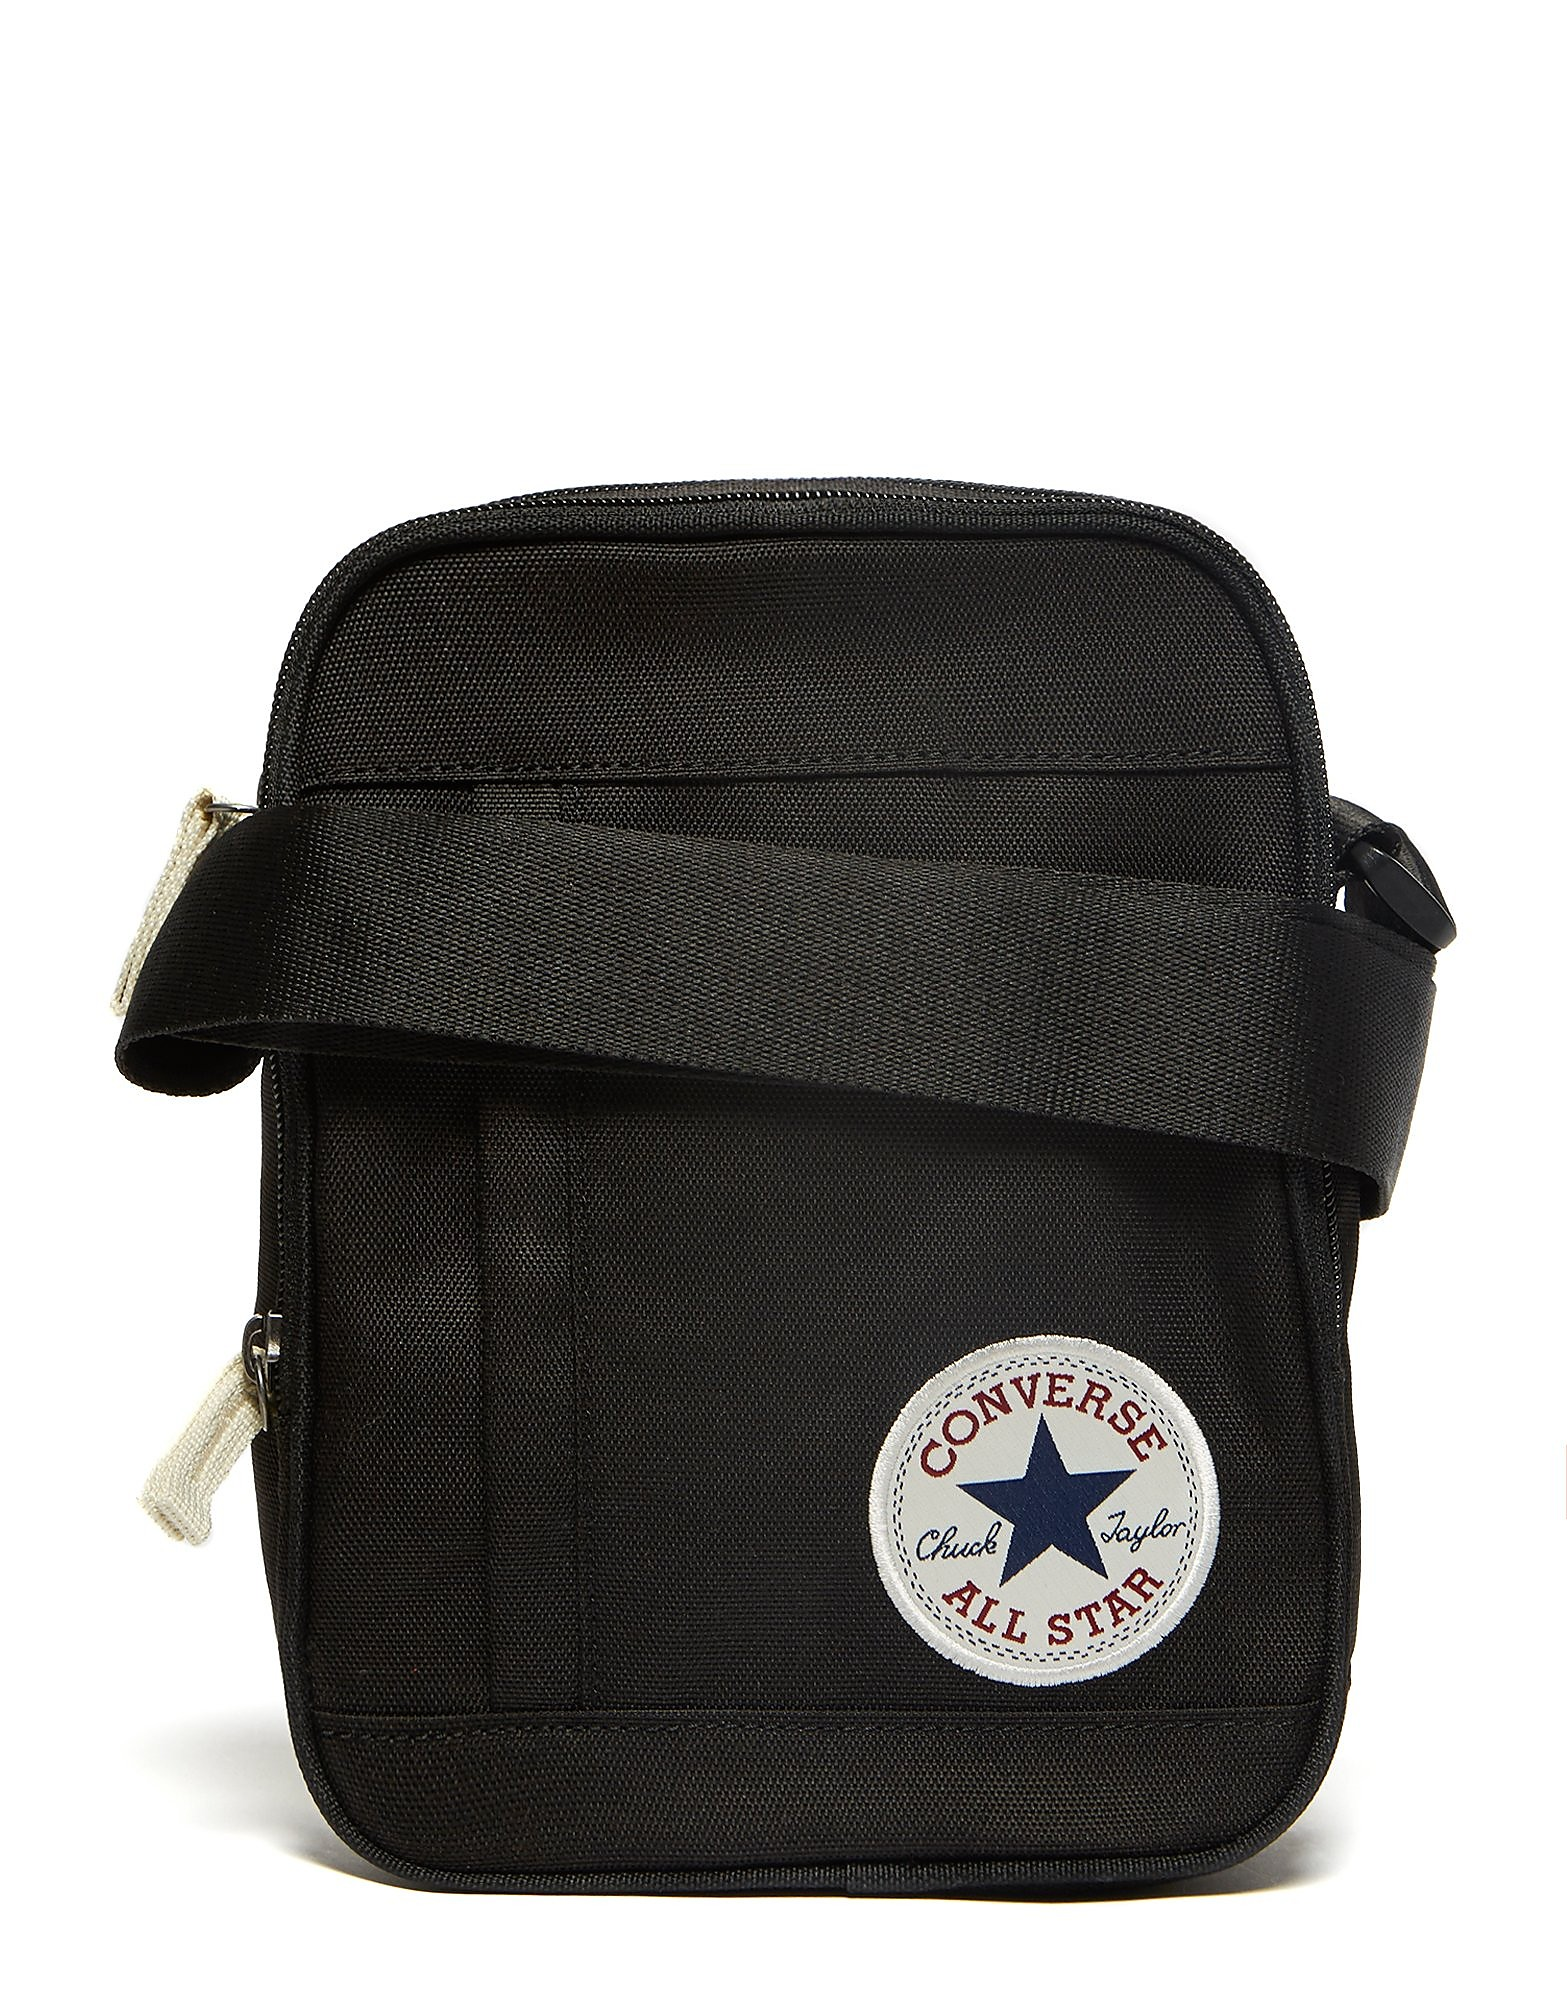 Converse Core Small Items Bag